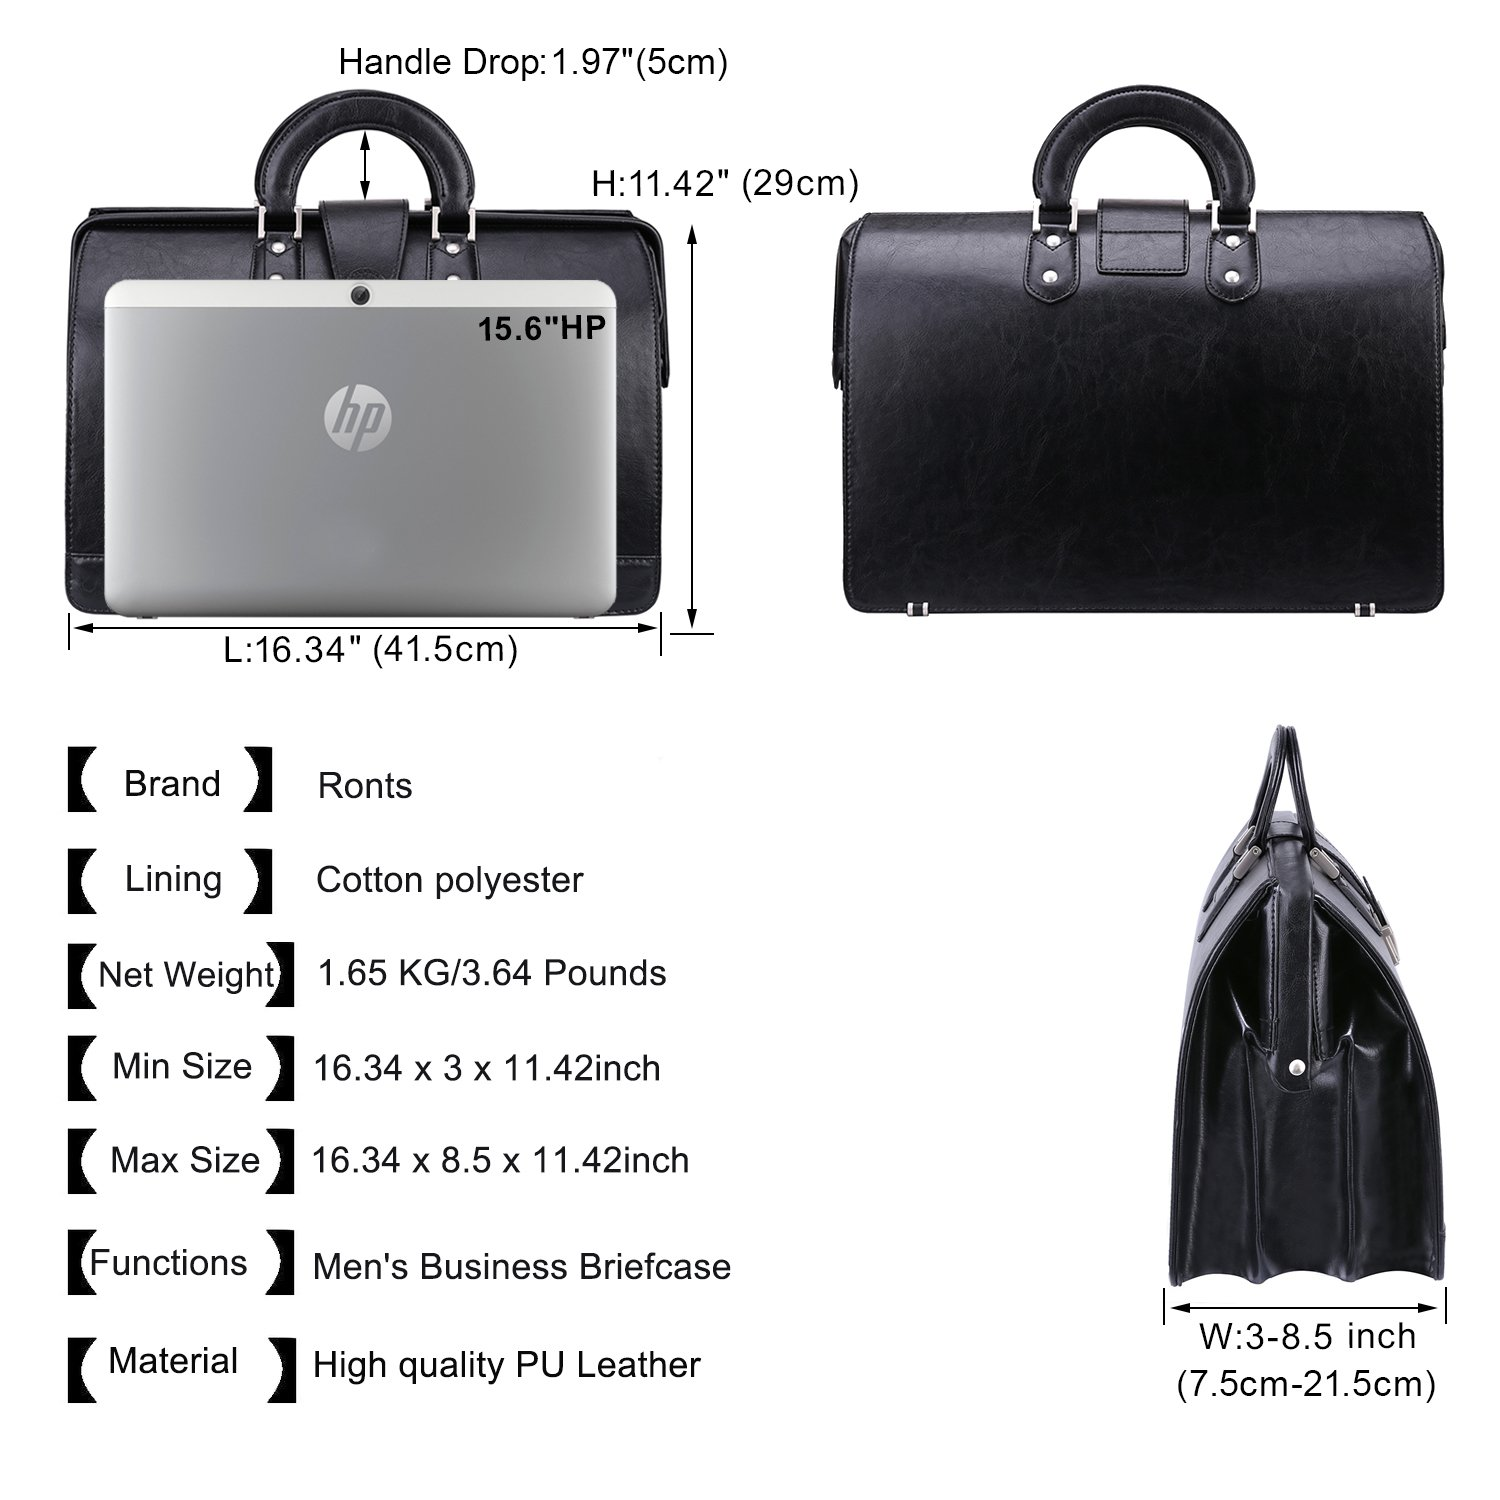 Ronts Mens PU Leather Briefcase Lawyer Attache Case with Lock 15.6 Inch Laptop Business Bag, Black by Ronts (Image #4)